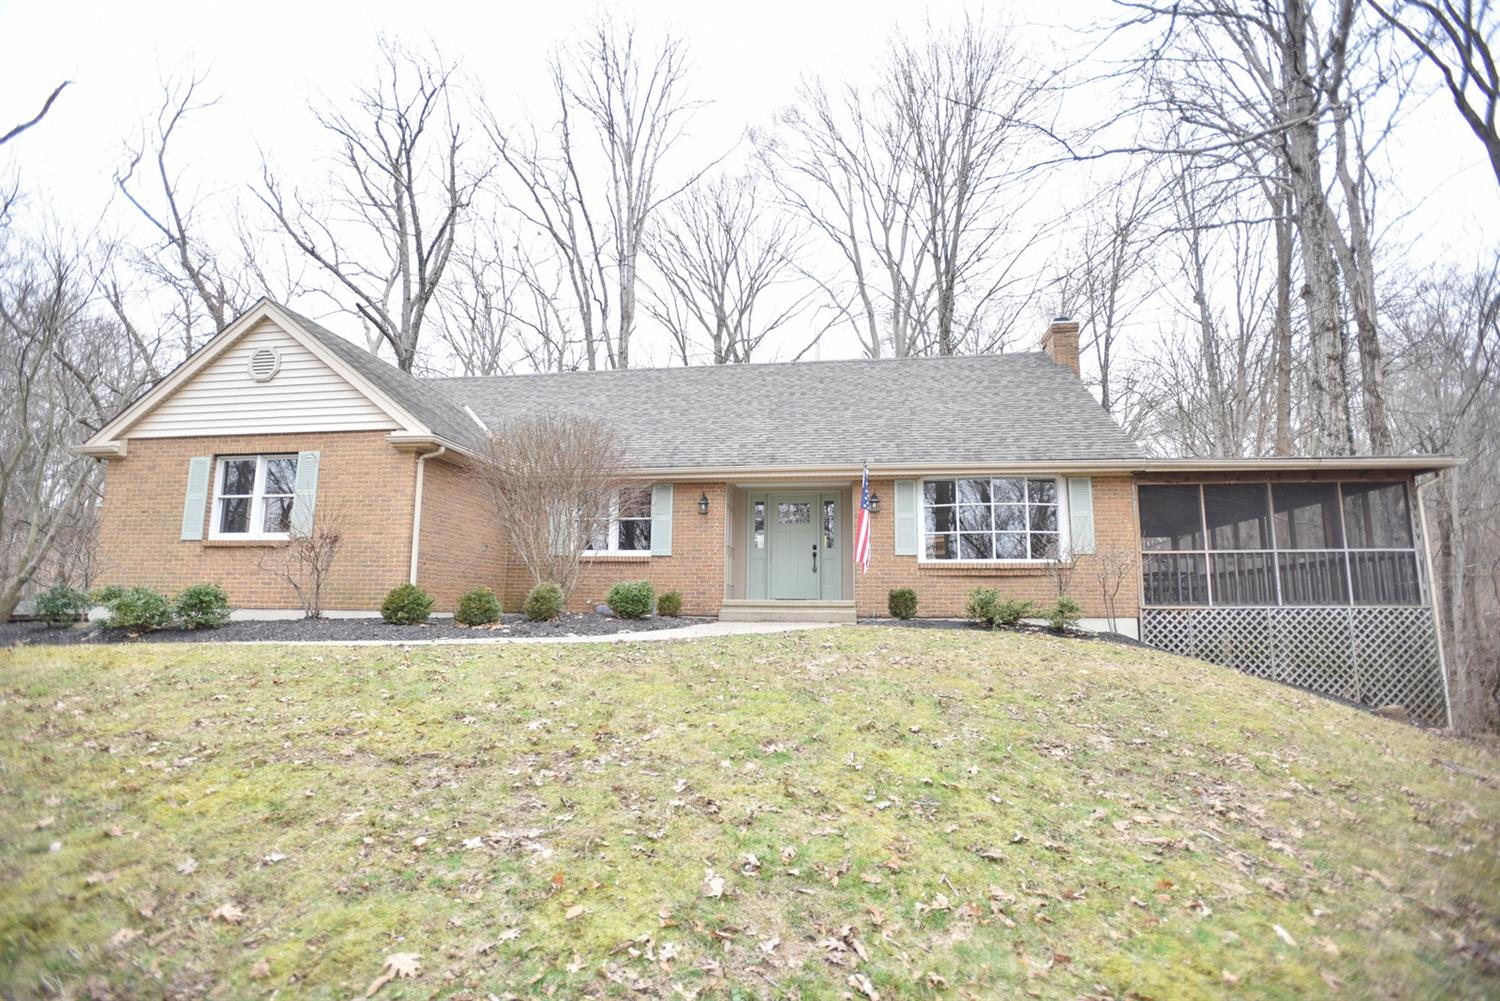 5500 Koester Knl Stonelick Twp., OH